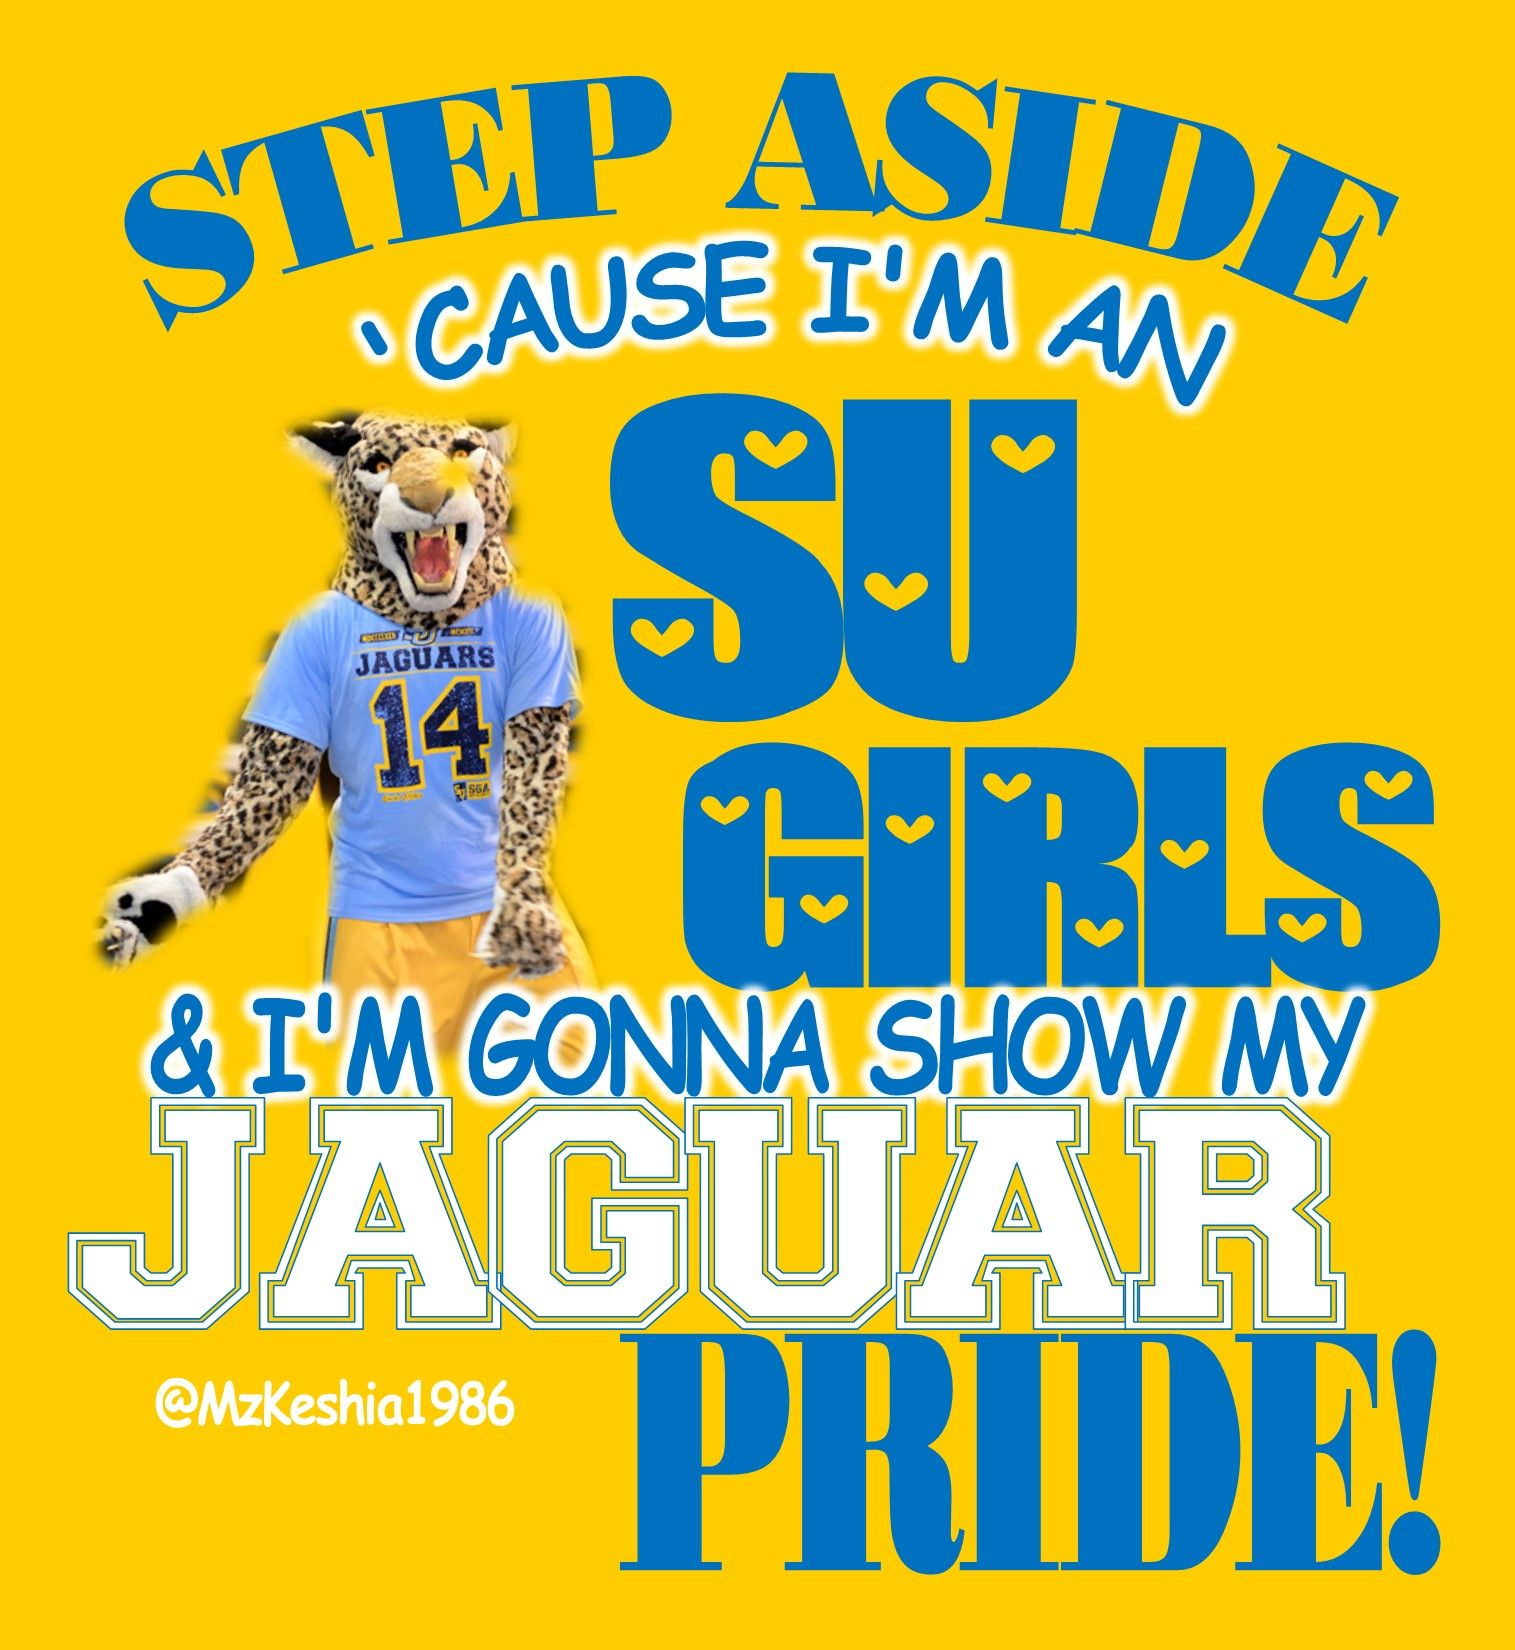 Pin by Keturah Ray on Southern jags (With images